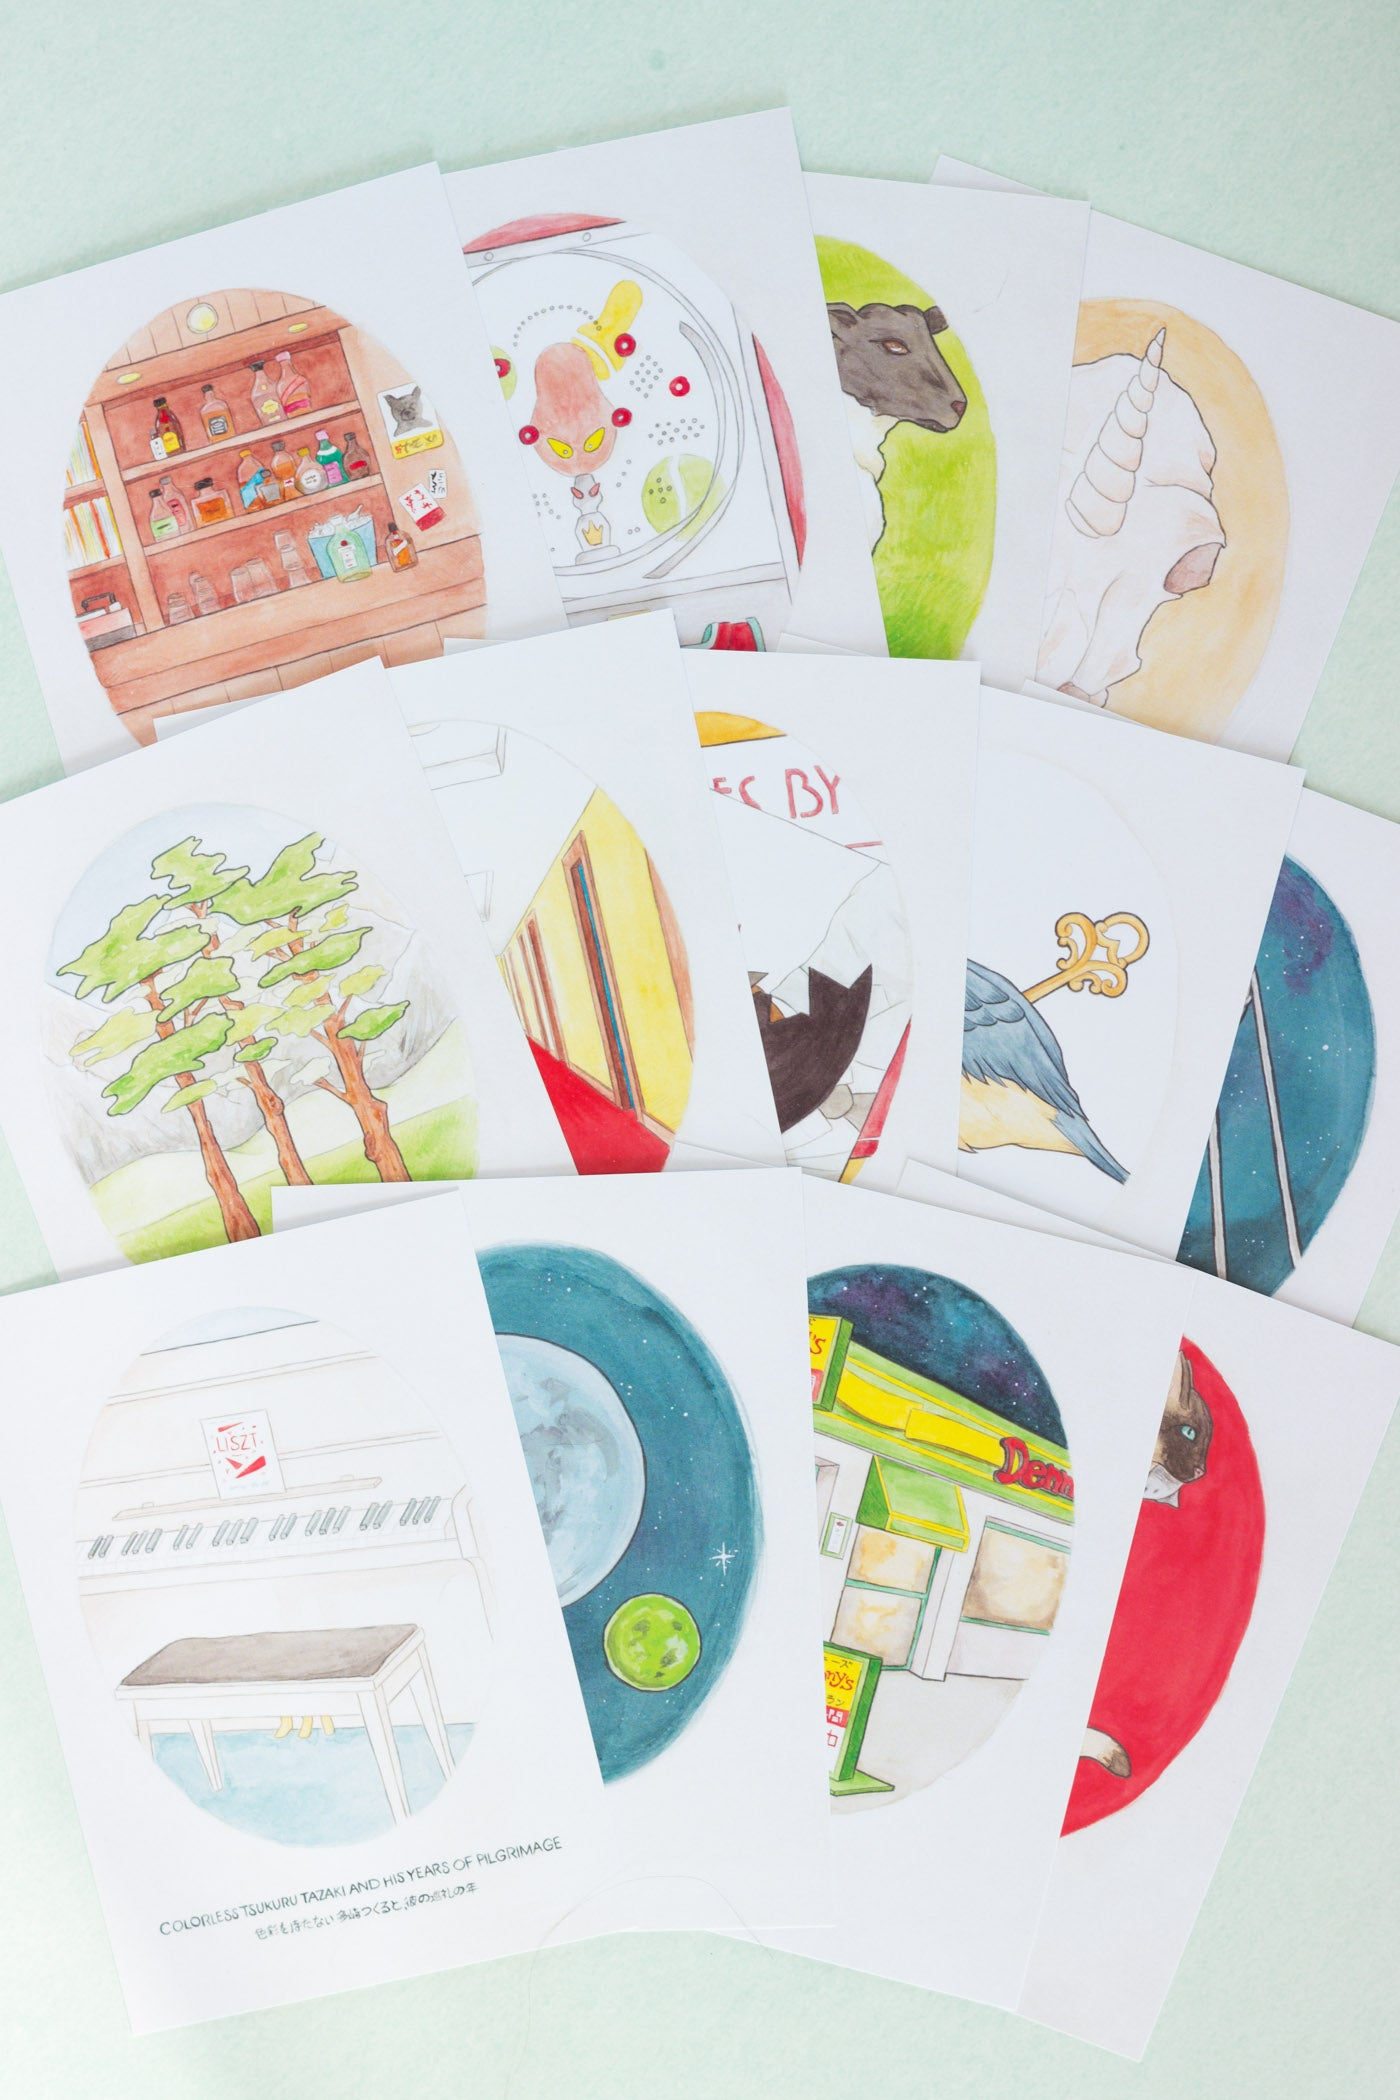 Haruki Murakami Novel Illustration Postcards